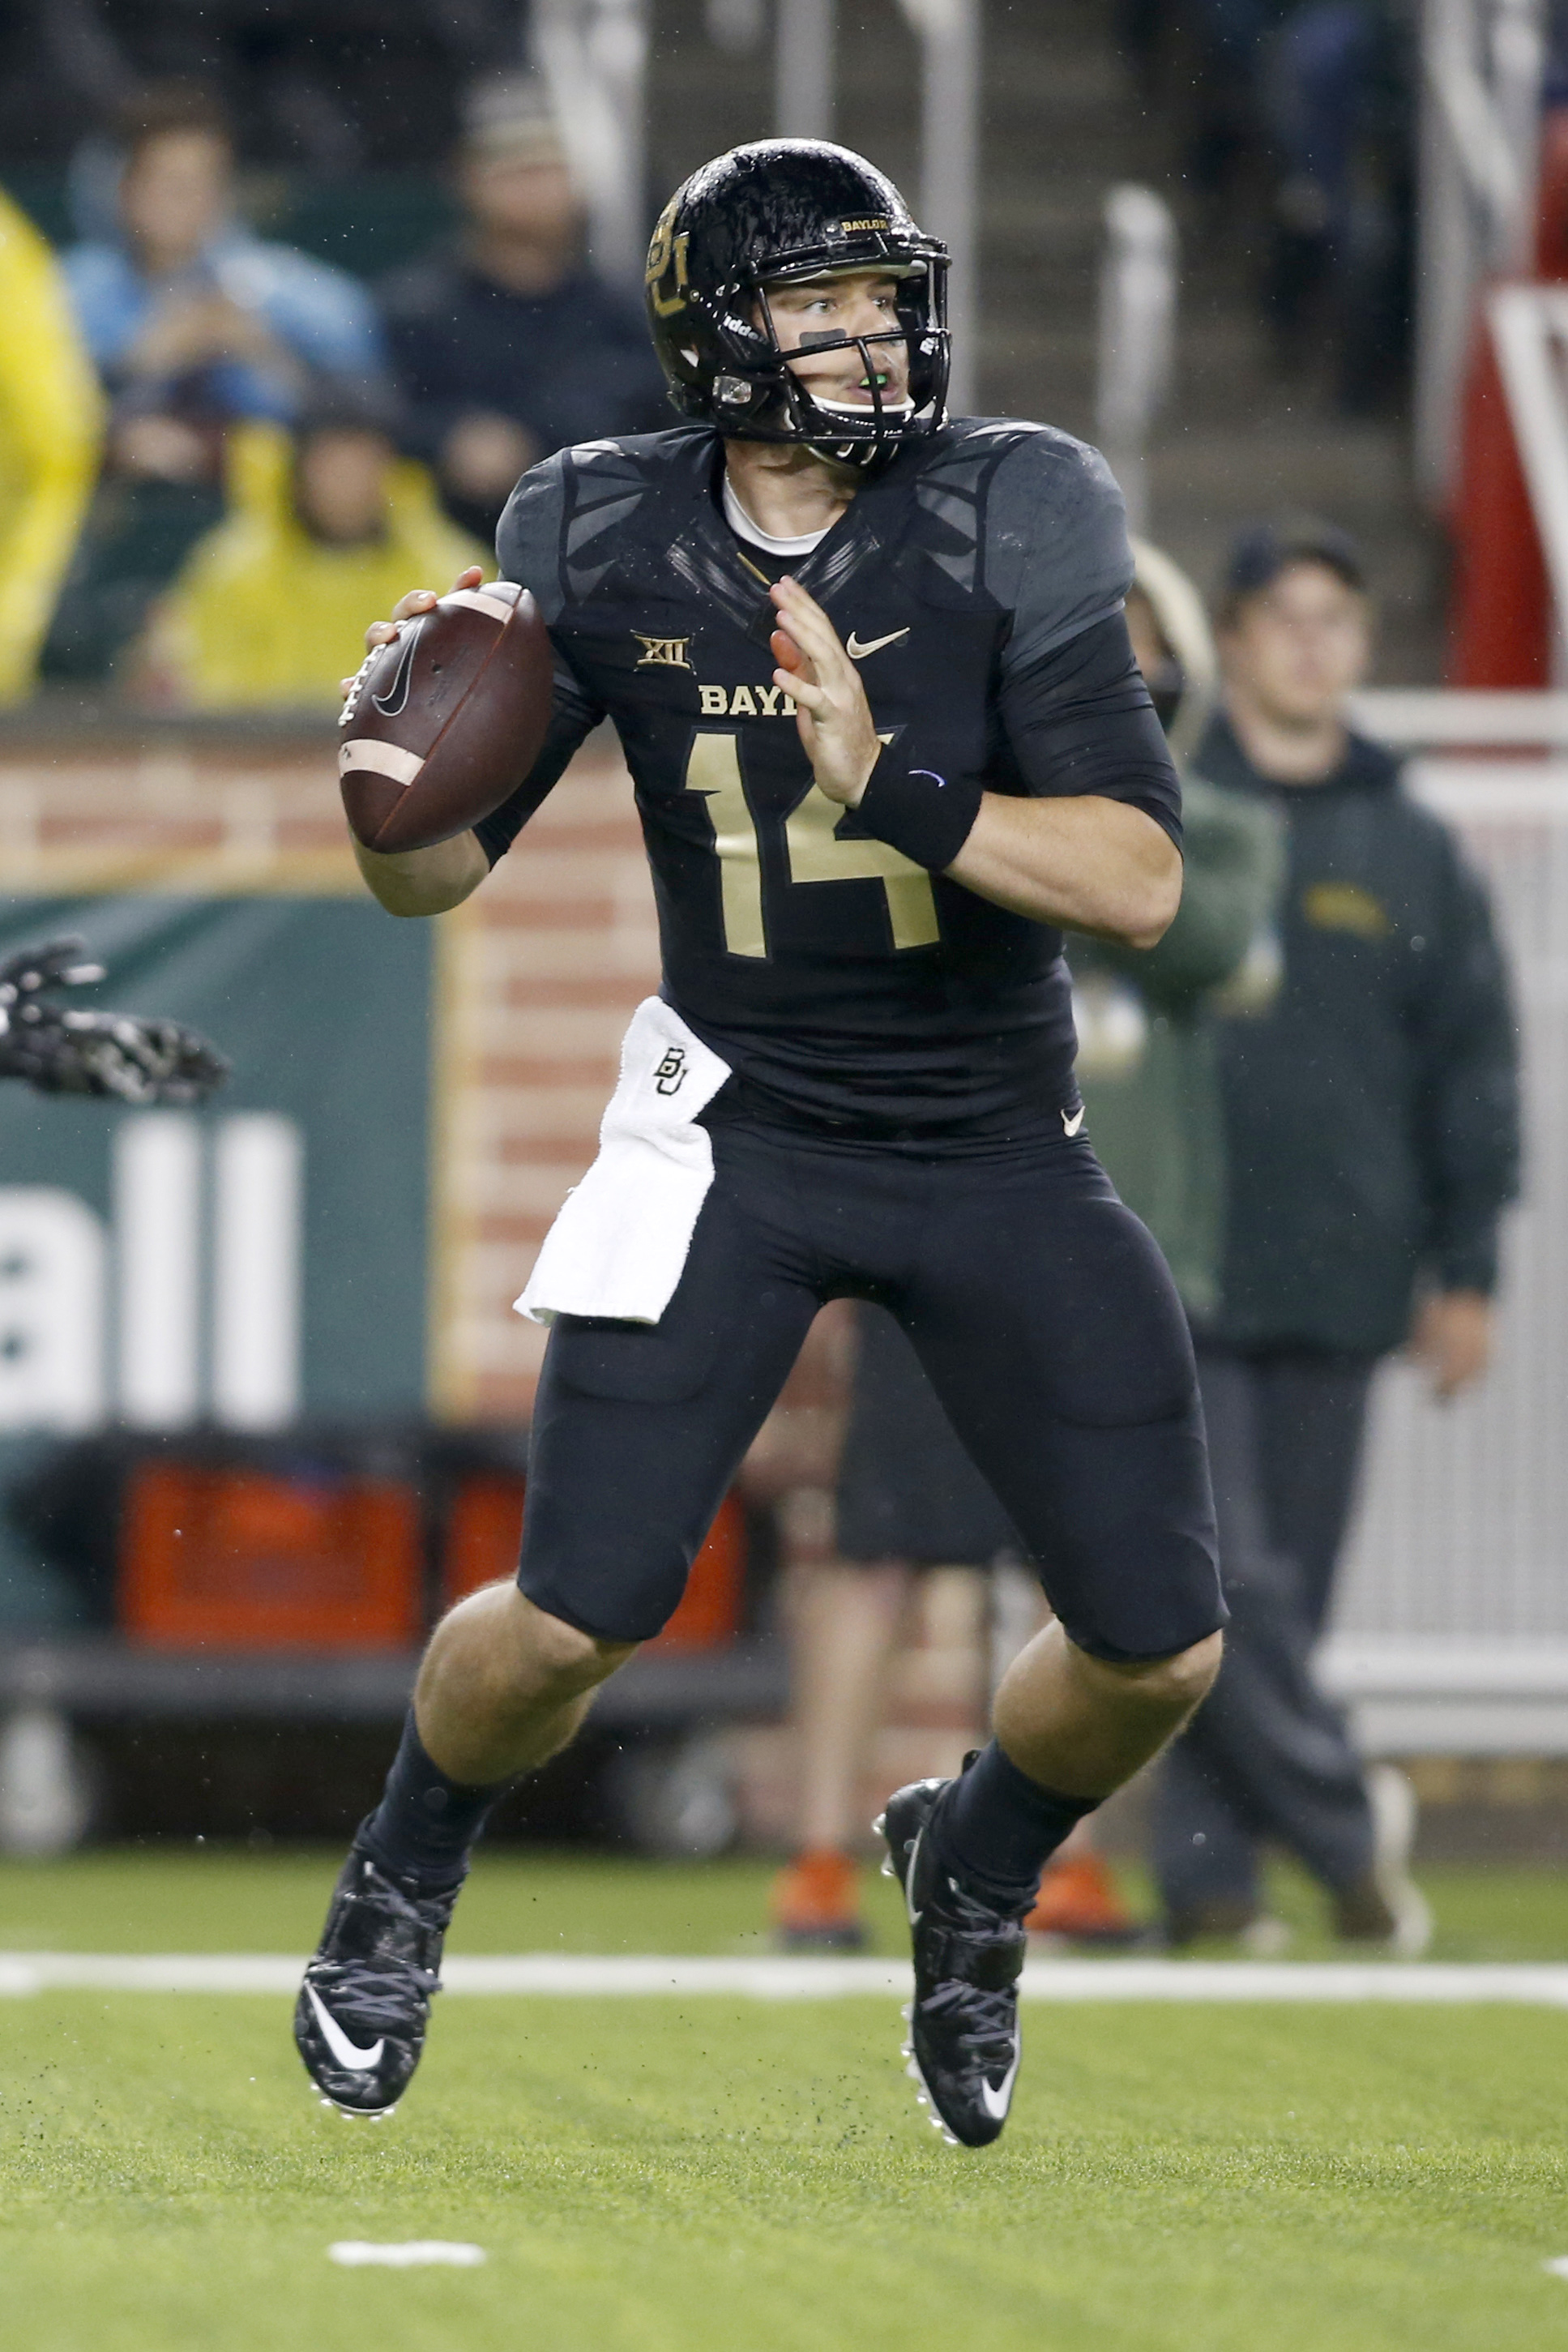 Will Bryce be able to suit up against Kansas State?